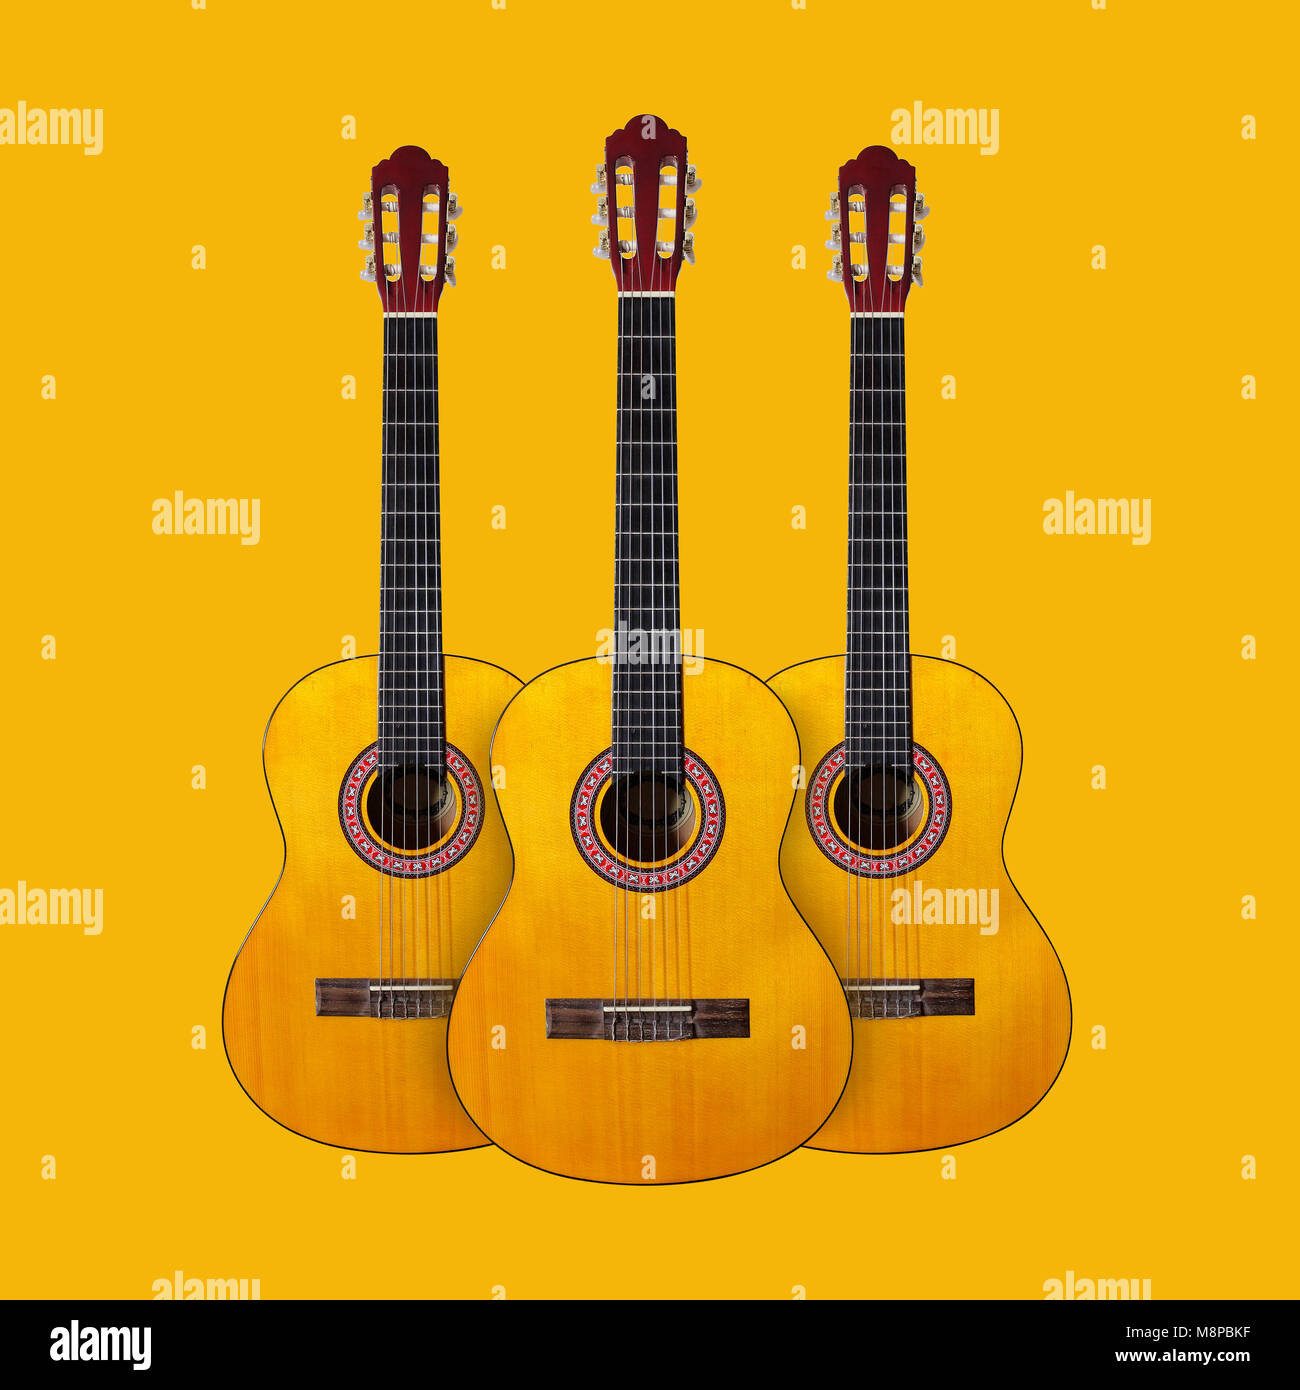 Musical instrument - Three Classic guitar on a yellow background. - Stock Image